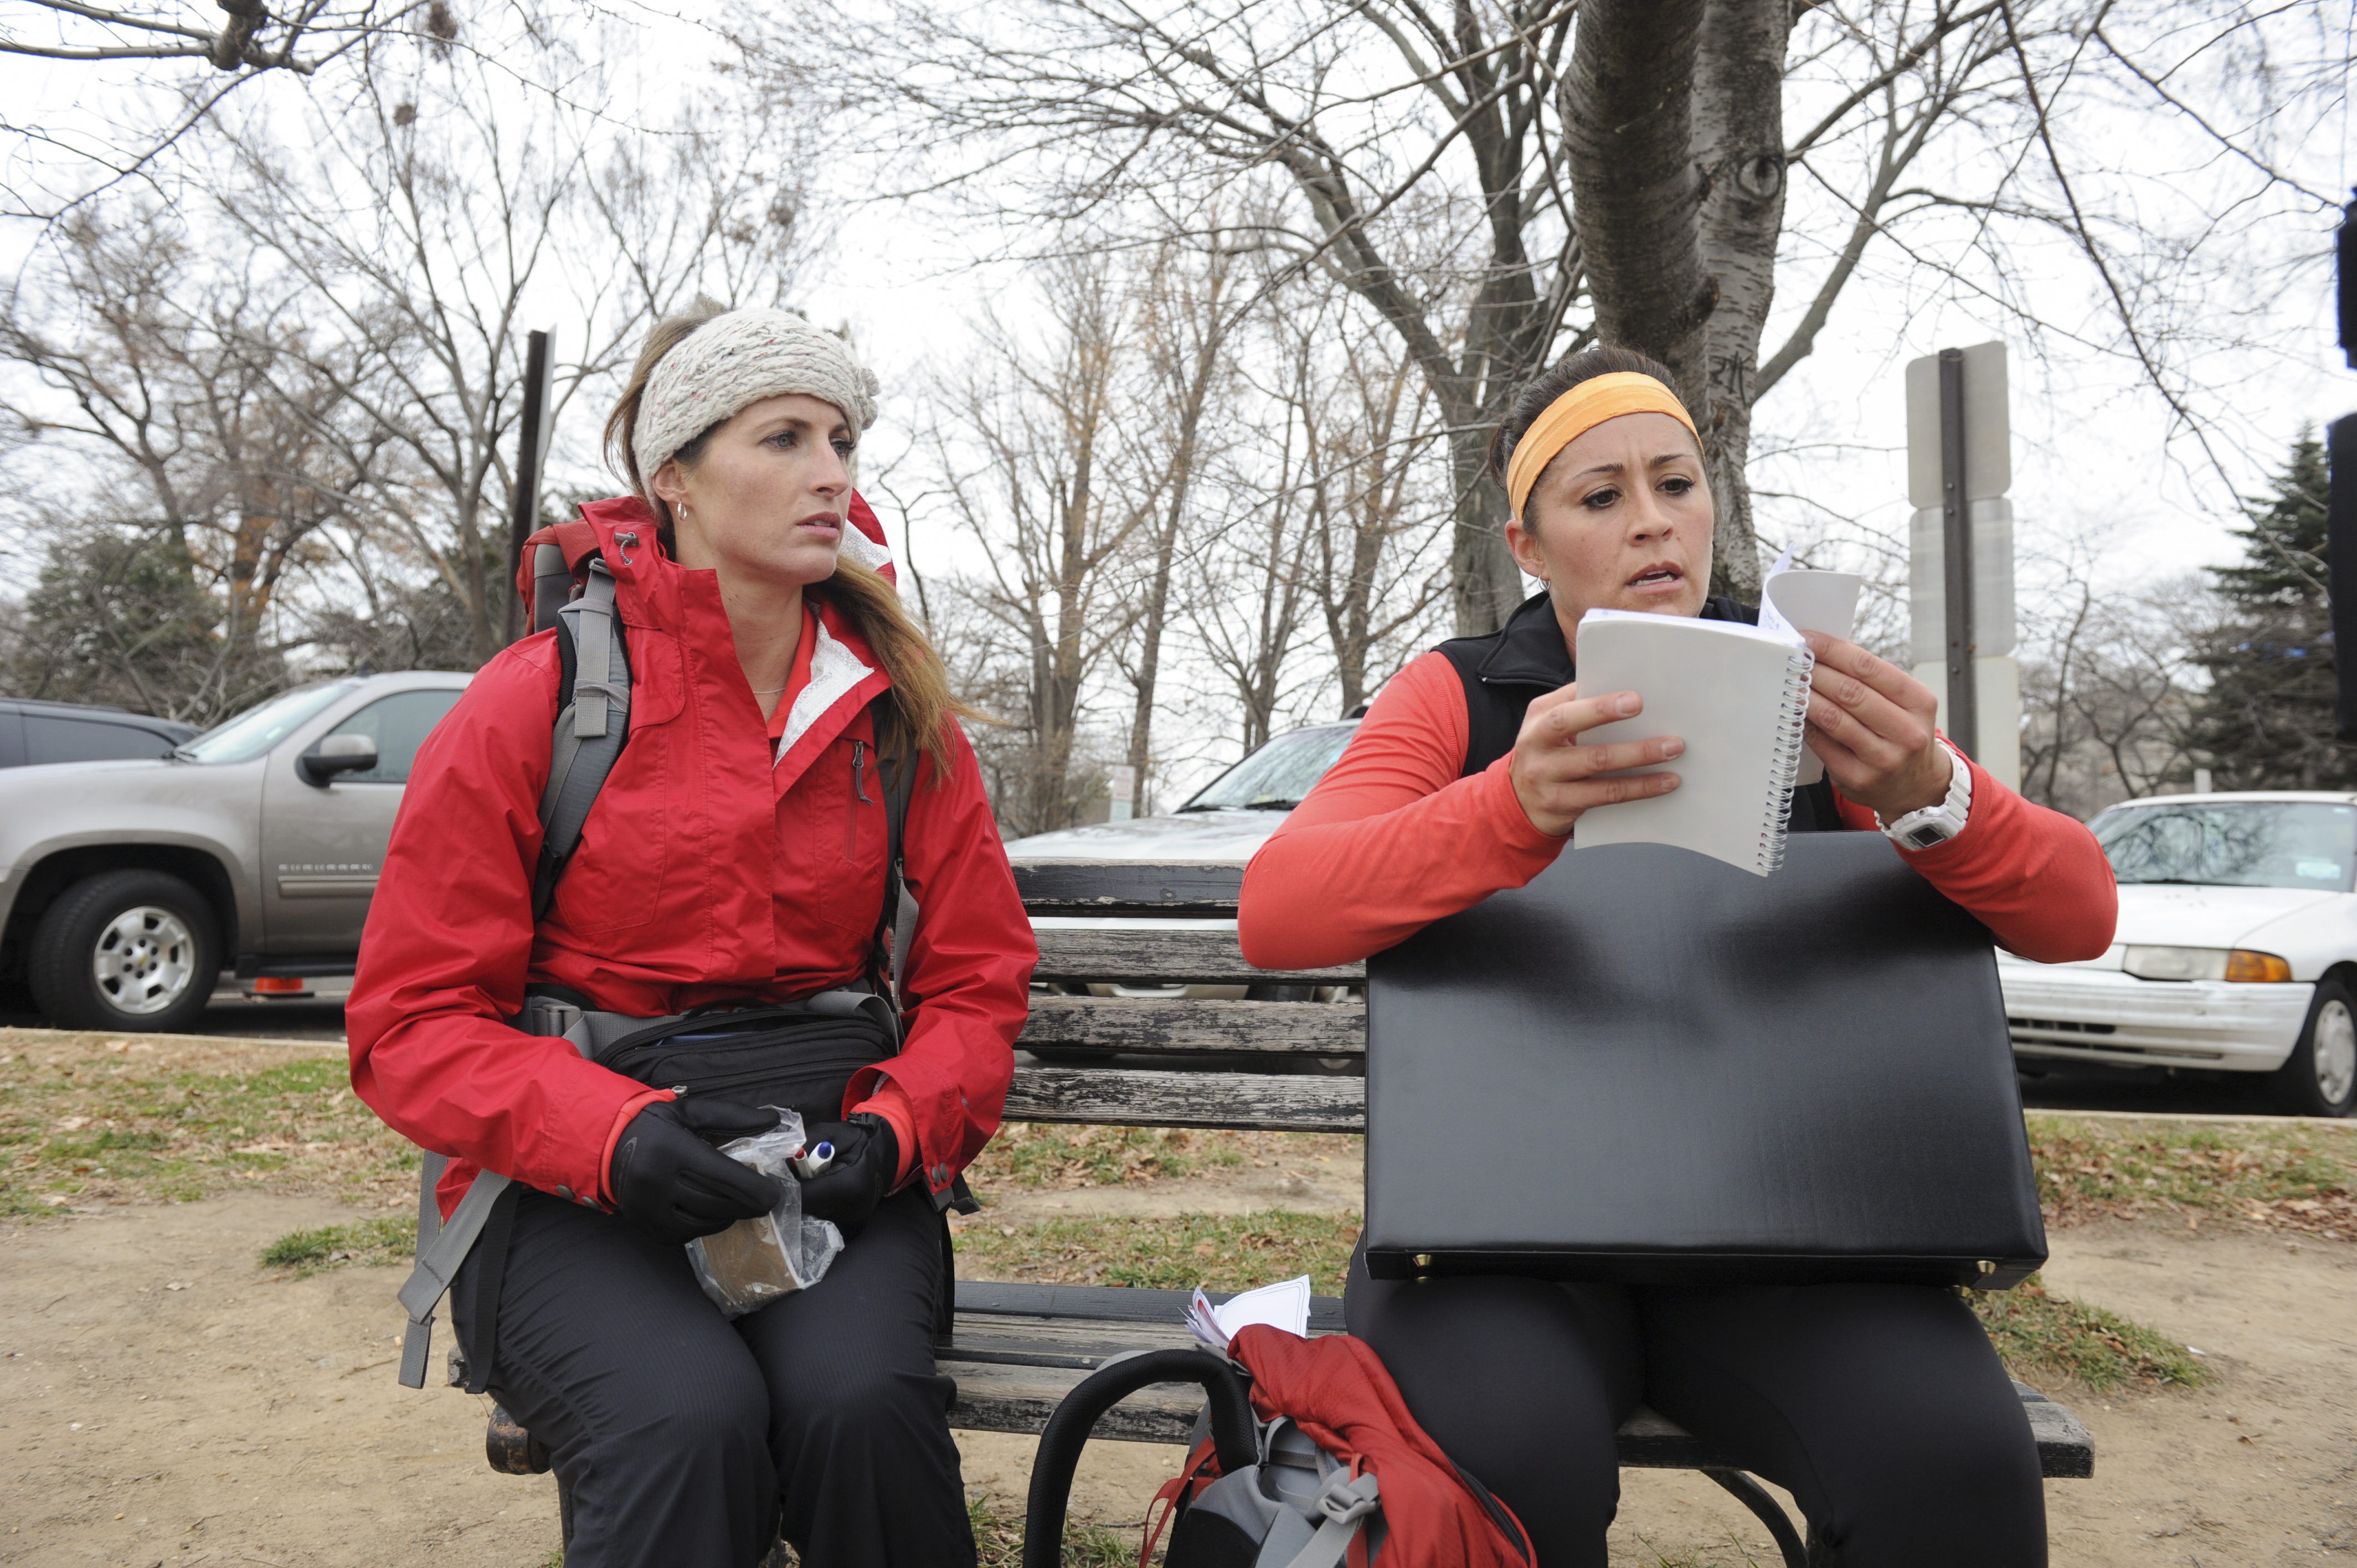 Searching among spies in the season finale of The Amazing Race